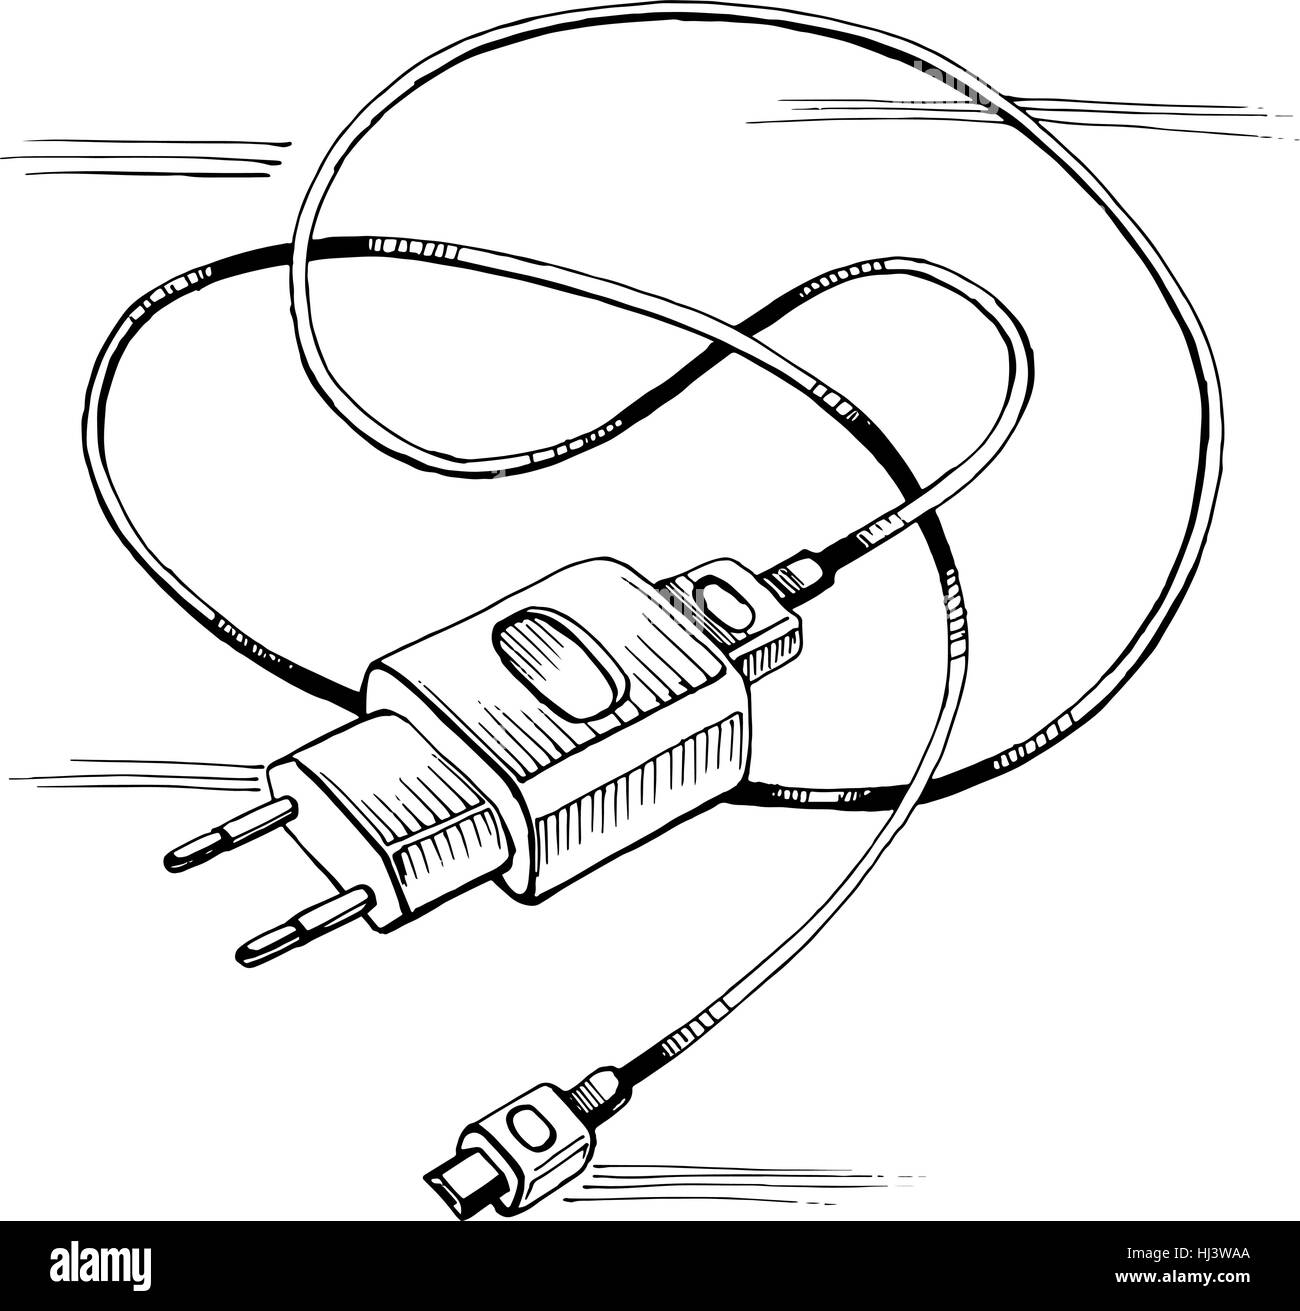 Vector Sketch Charger Usb Device Cable Stock Art Phone Wiring Diagram